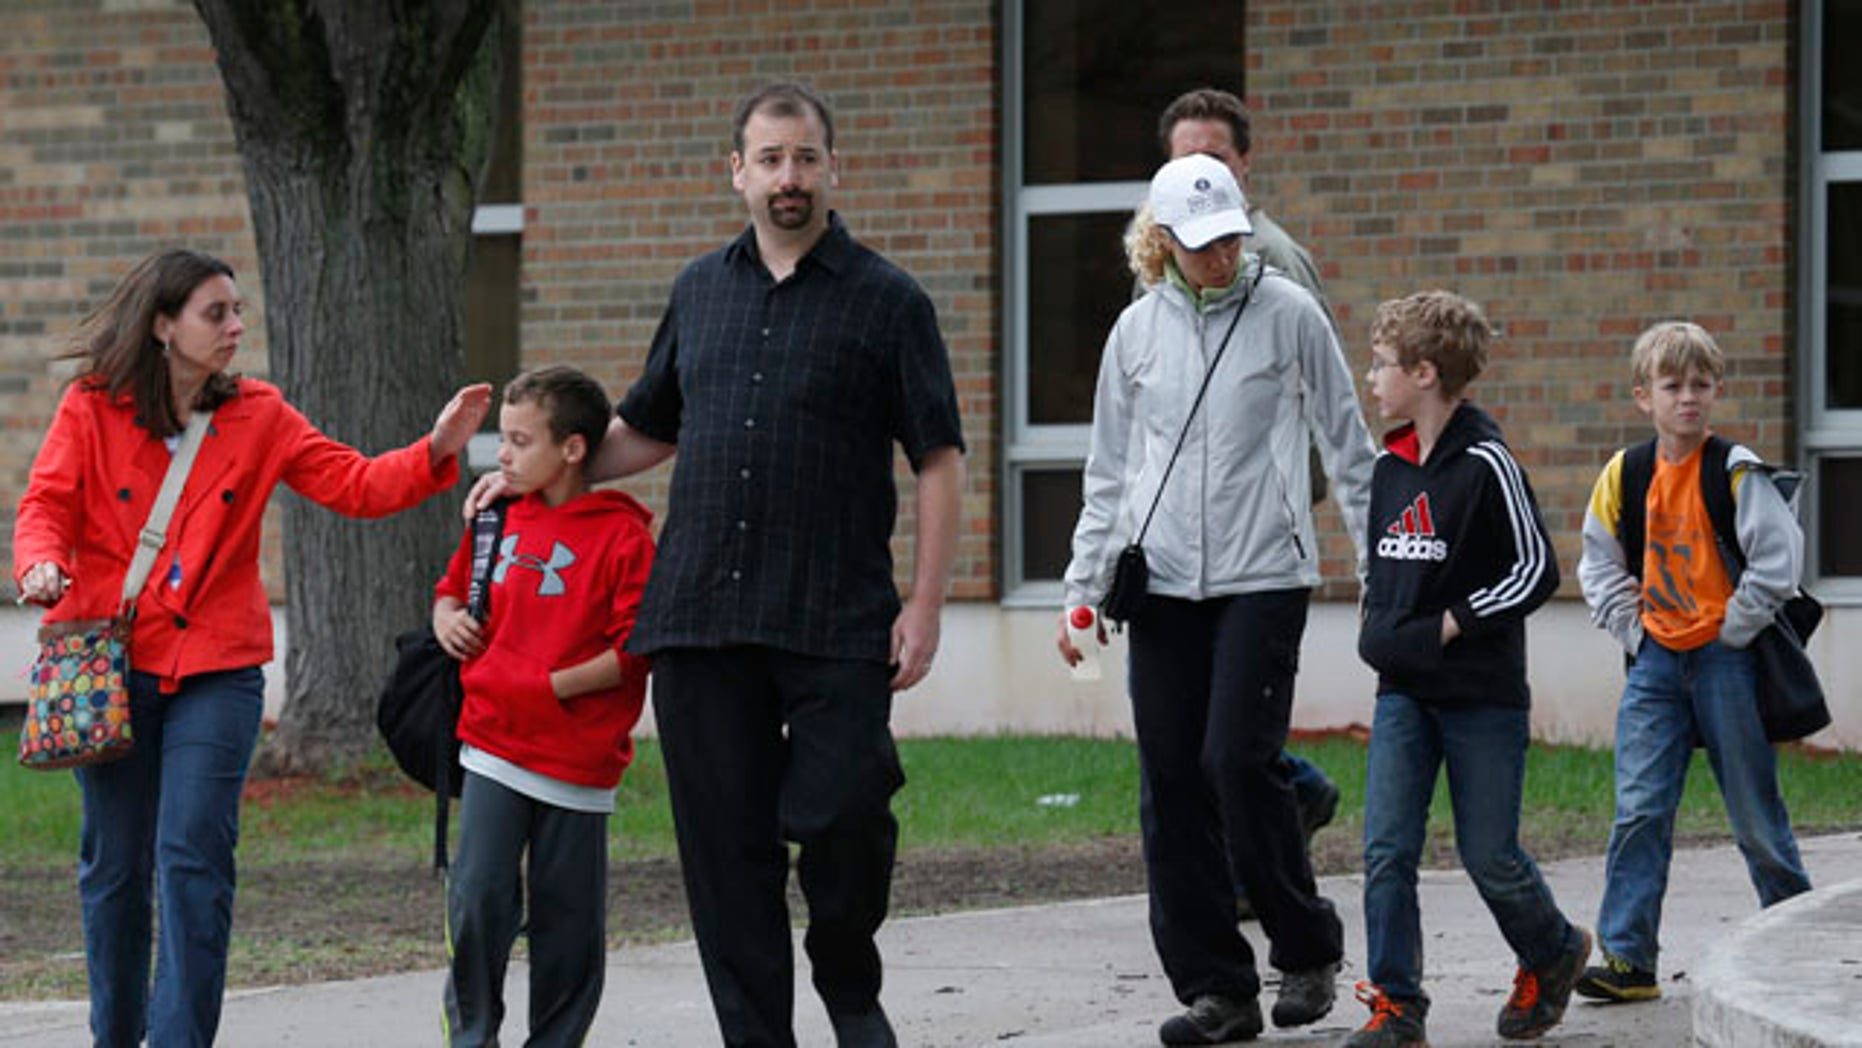 May 22, 2013: Parents and their children leave the Peter Hobart Elementary School in St. Louis Park, Minn.